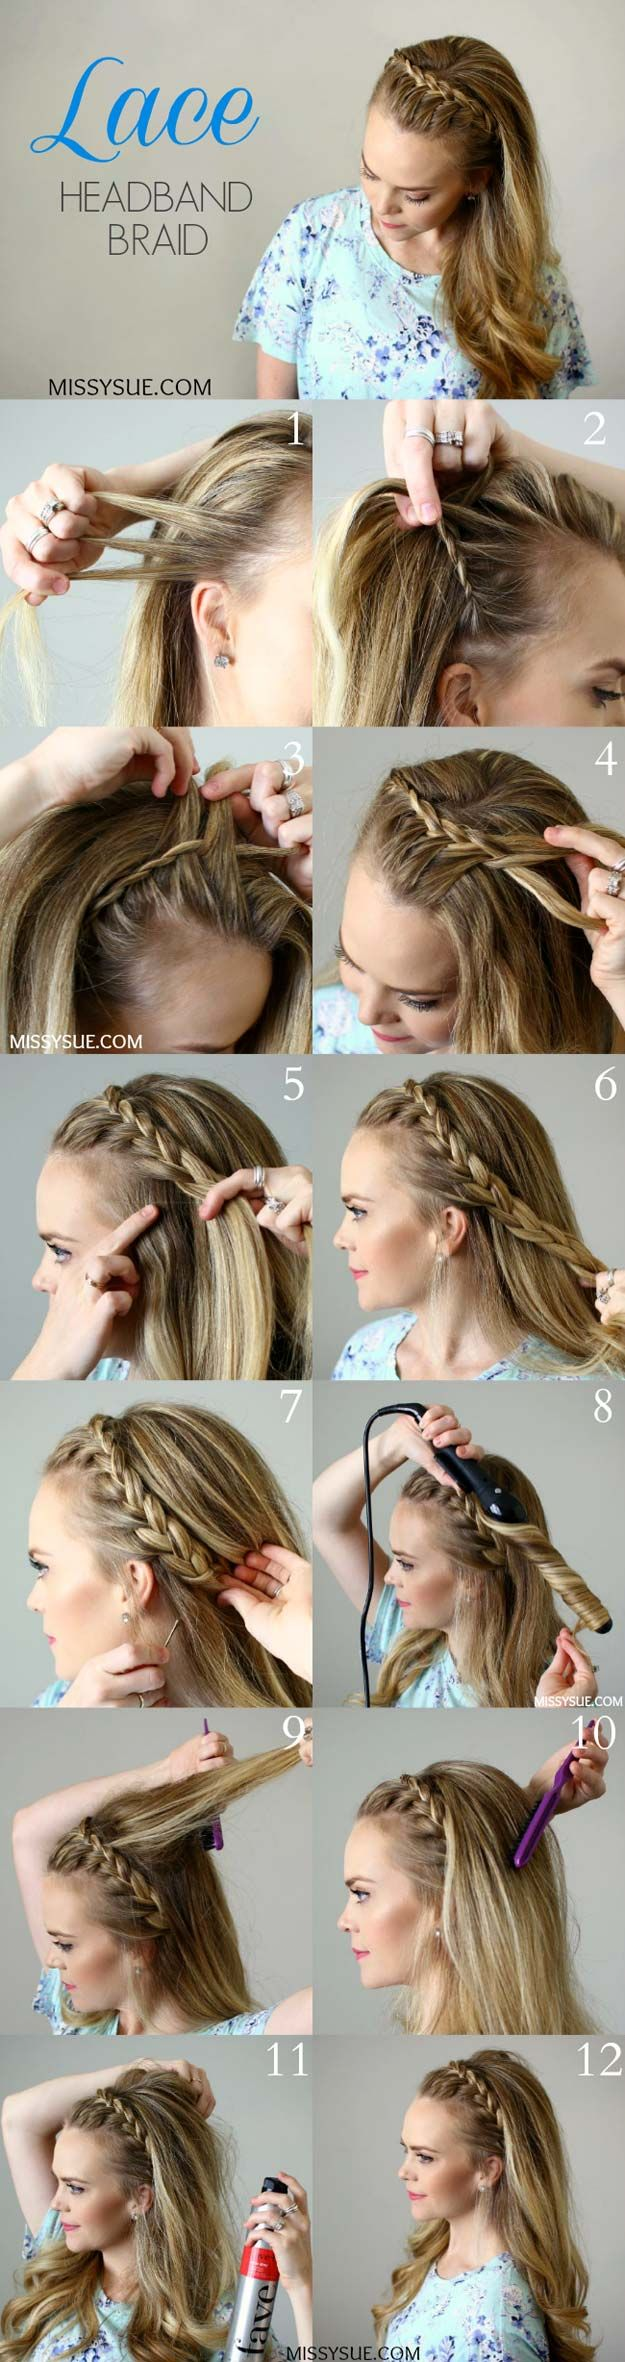 French braiding tips - 40 Of The Best Cute Hair Braiding Tutorials